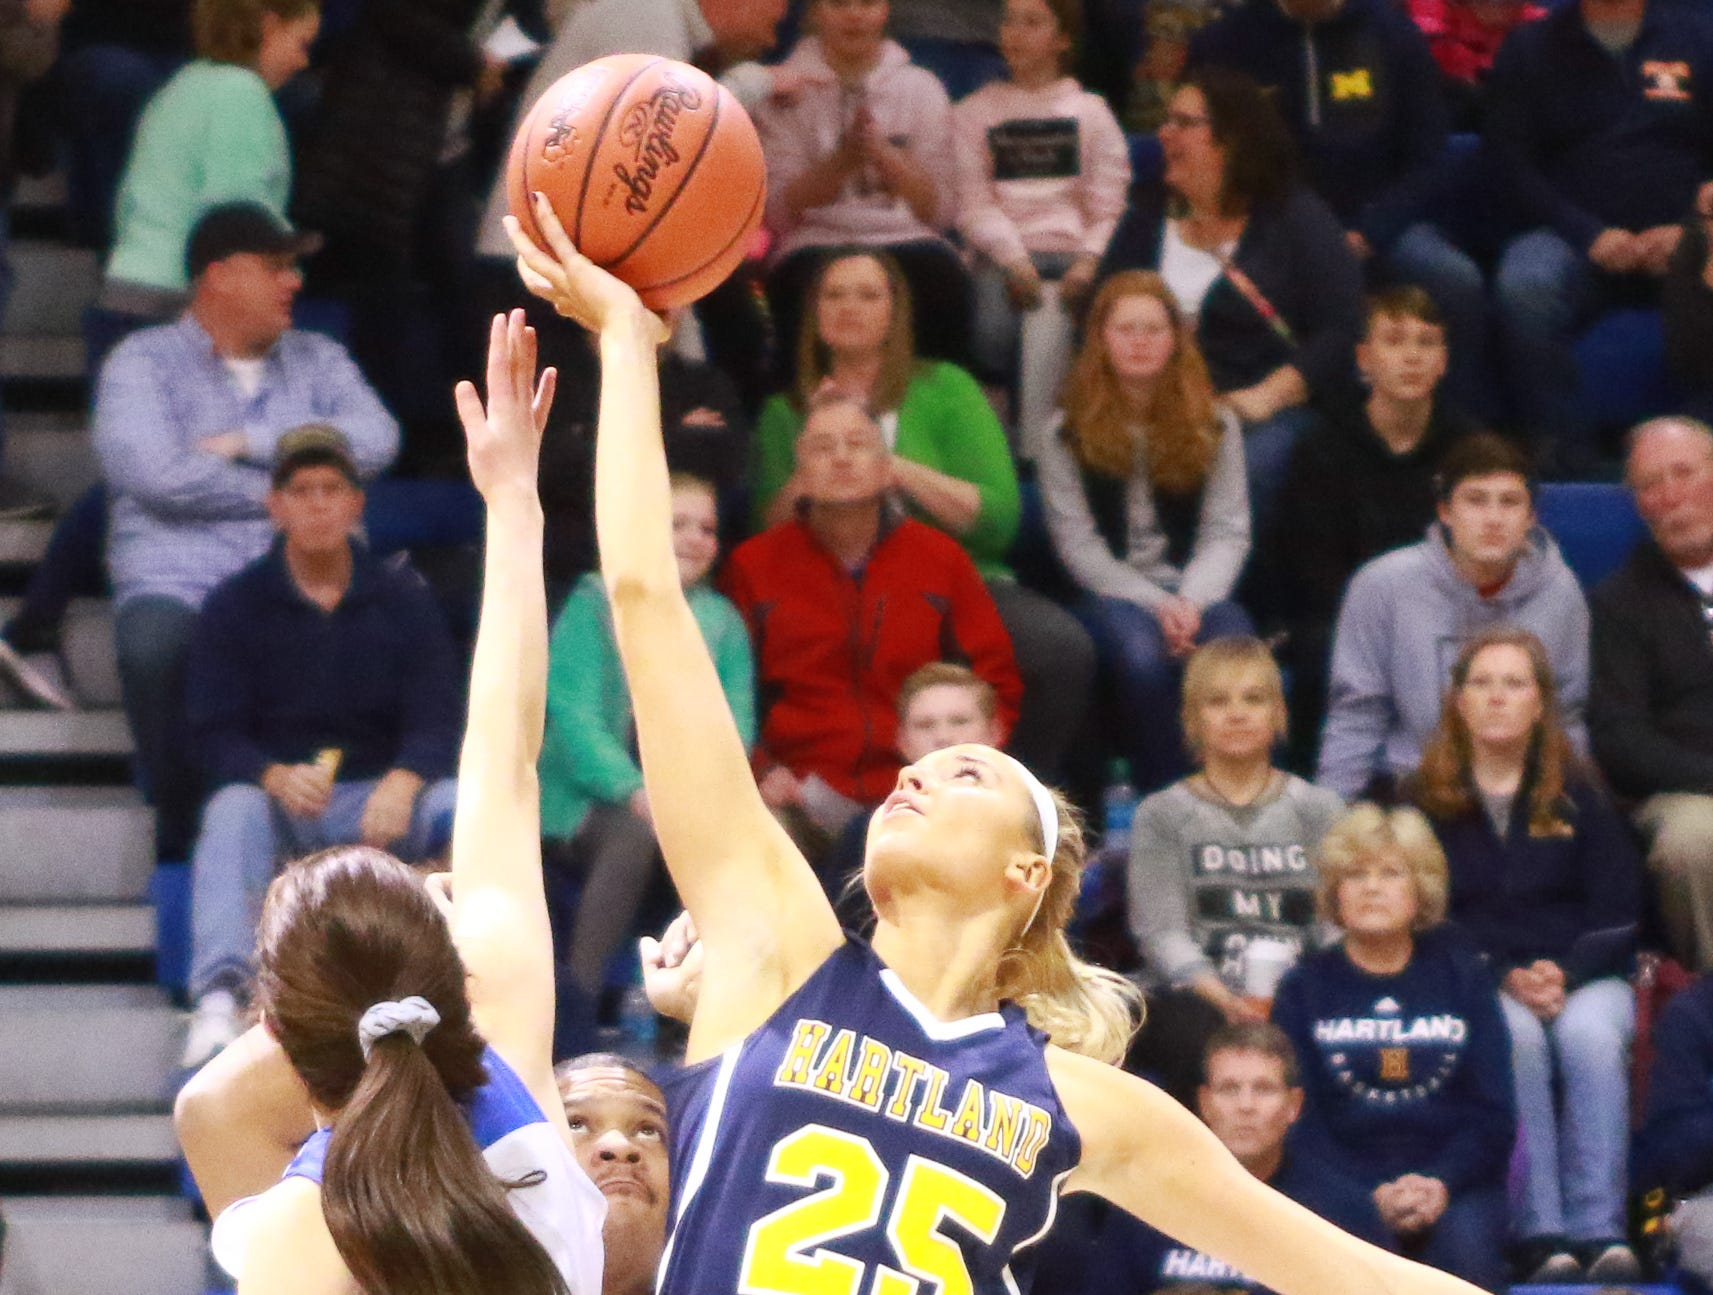 Hartland's Whitney Sollom (25) controls the opening tip in a 50-46 victory over Walled Lake Western in a regional championship basketball game at Lakeland on Wednesday, March 13, 2019.